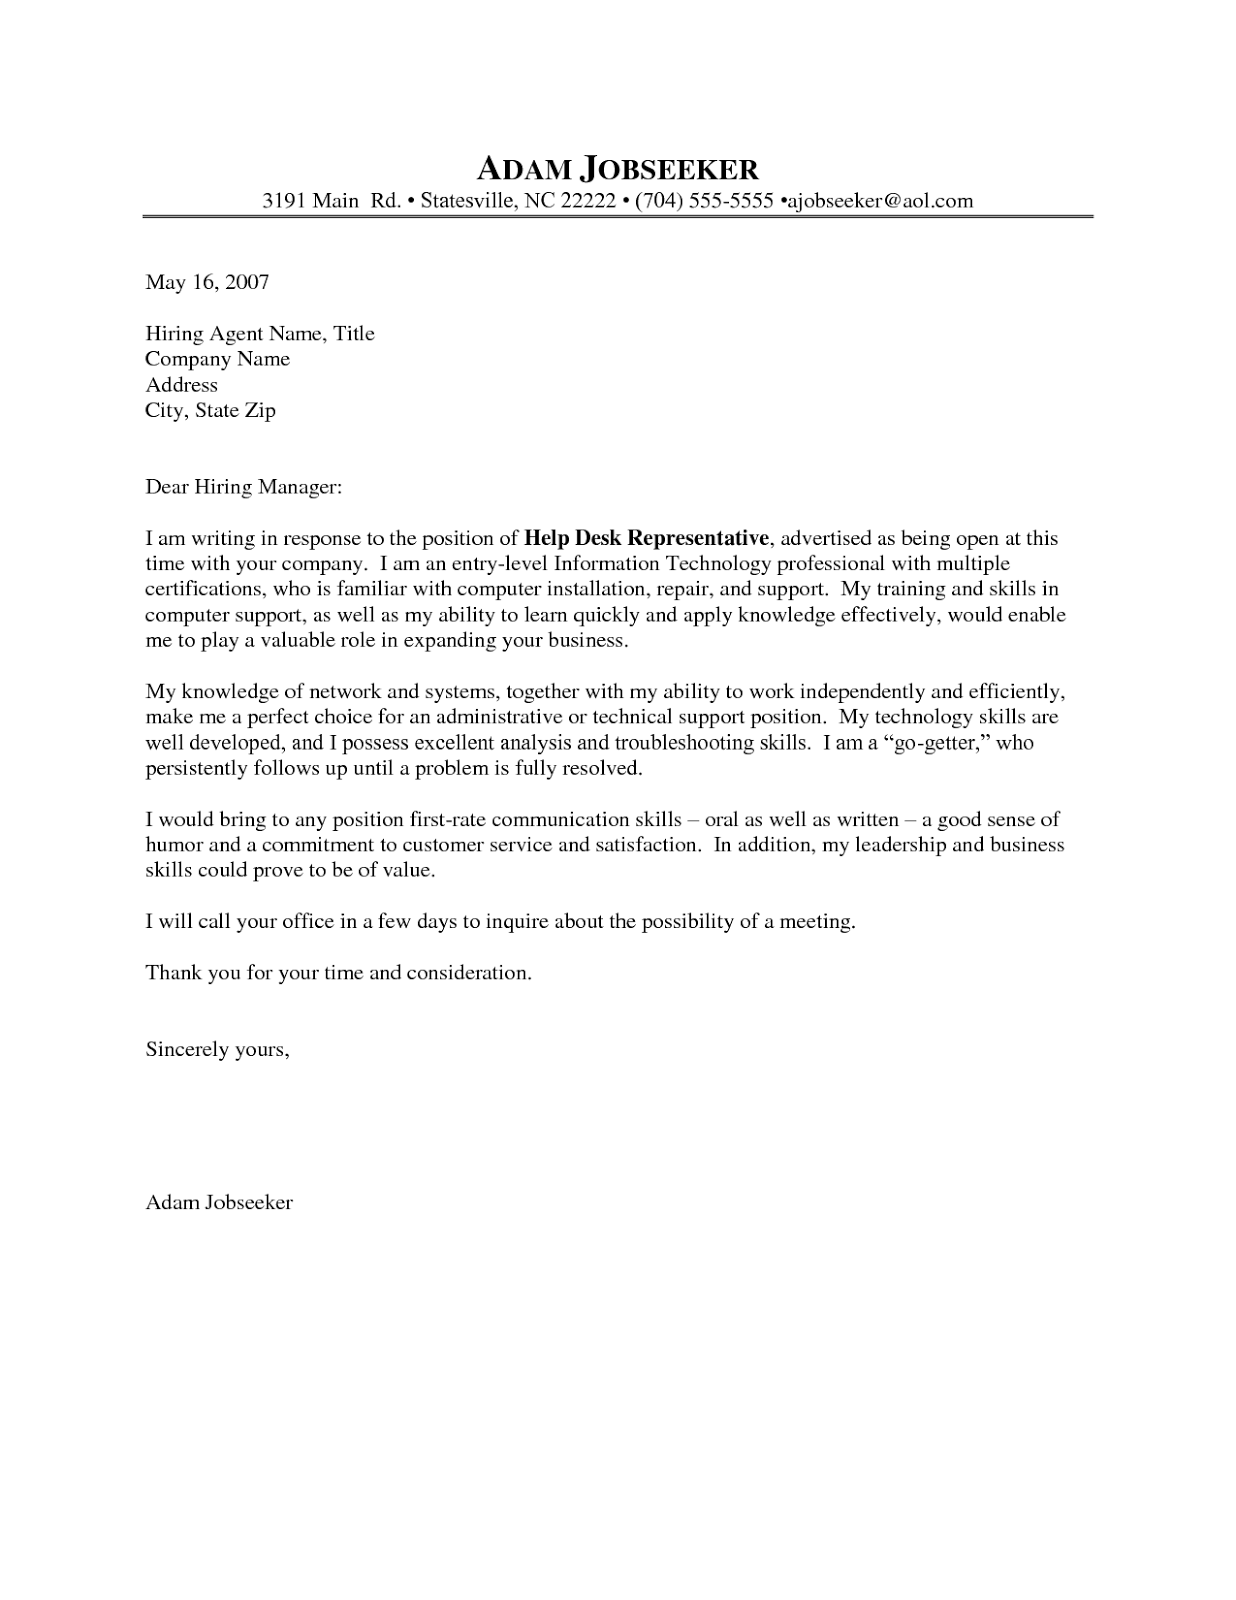 Cover Letter Engineering Internship   Letter   Pinterest     Employee Termination Letter Template Download View Fullsize Description Computer Engineering Cover Letter  Jobresume gdn